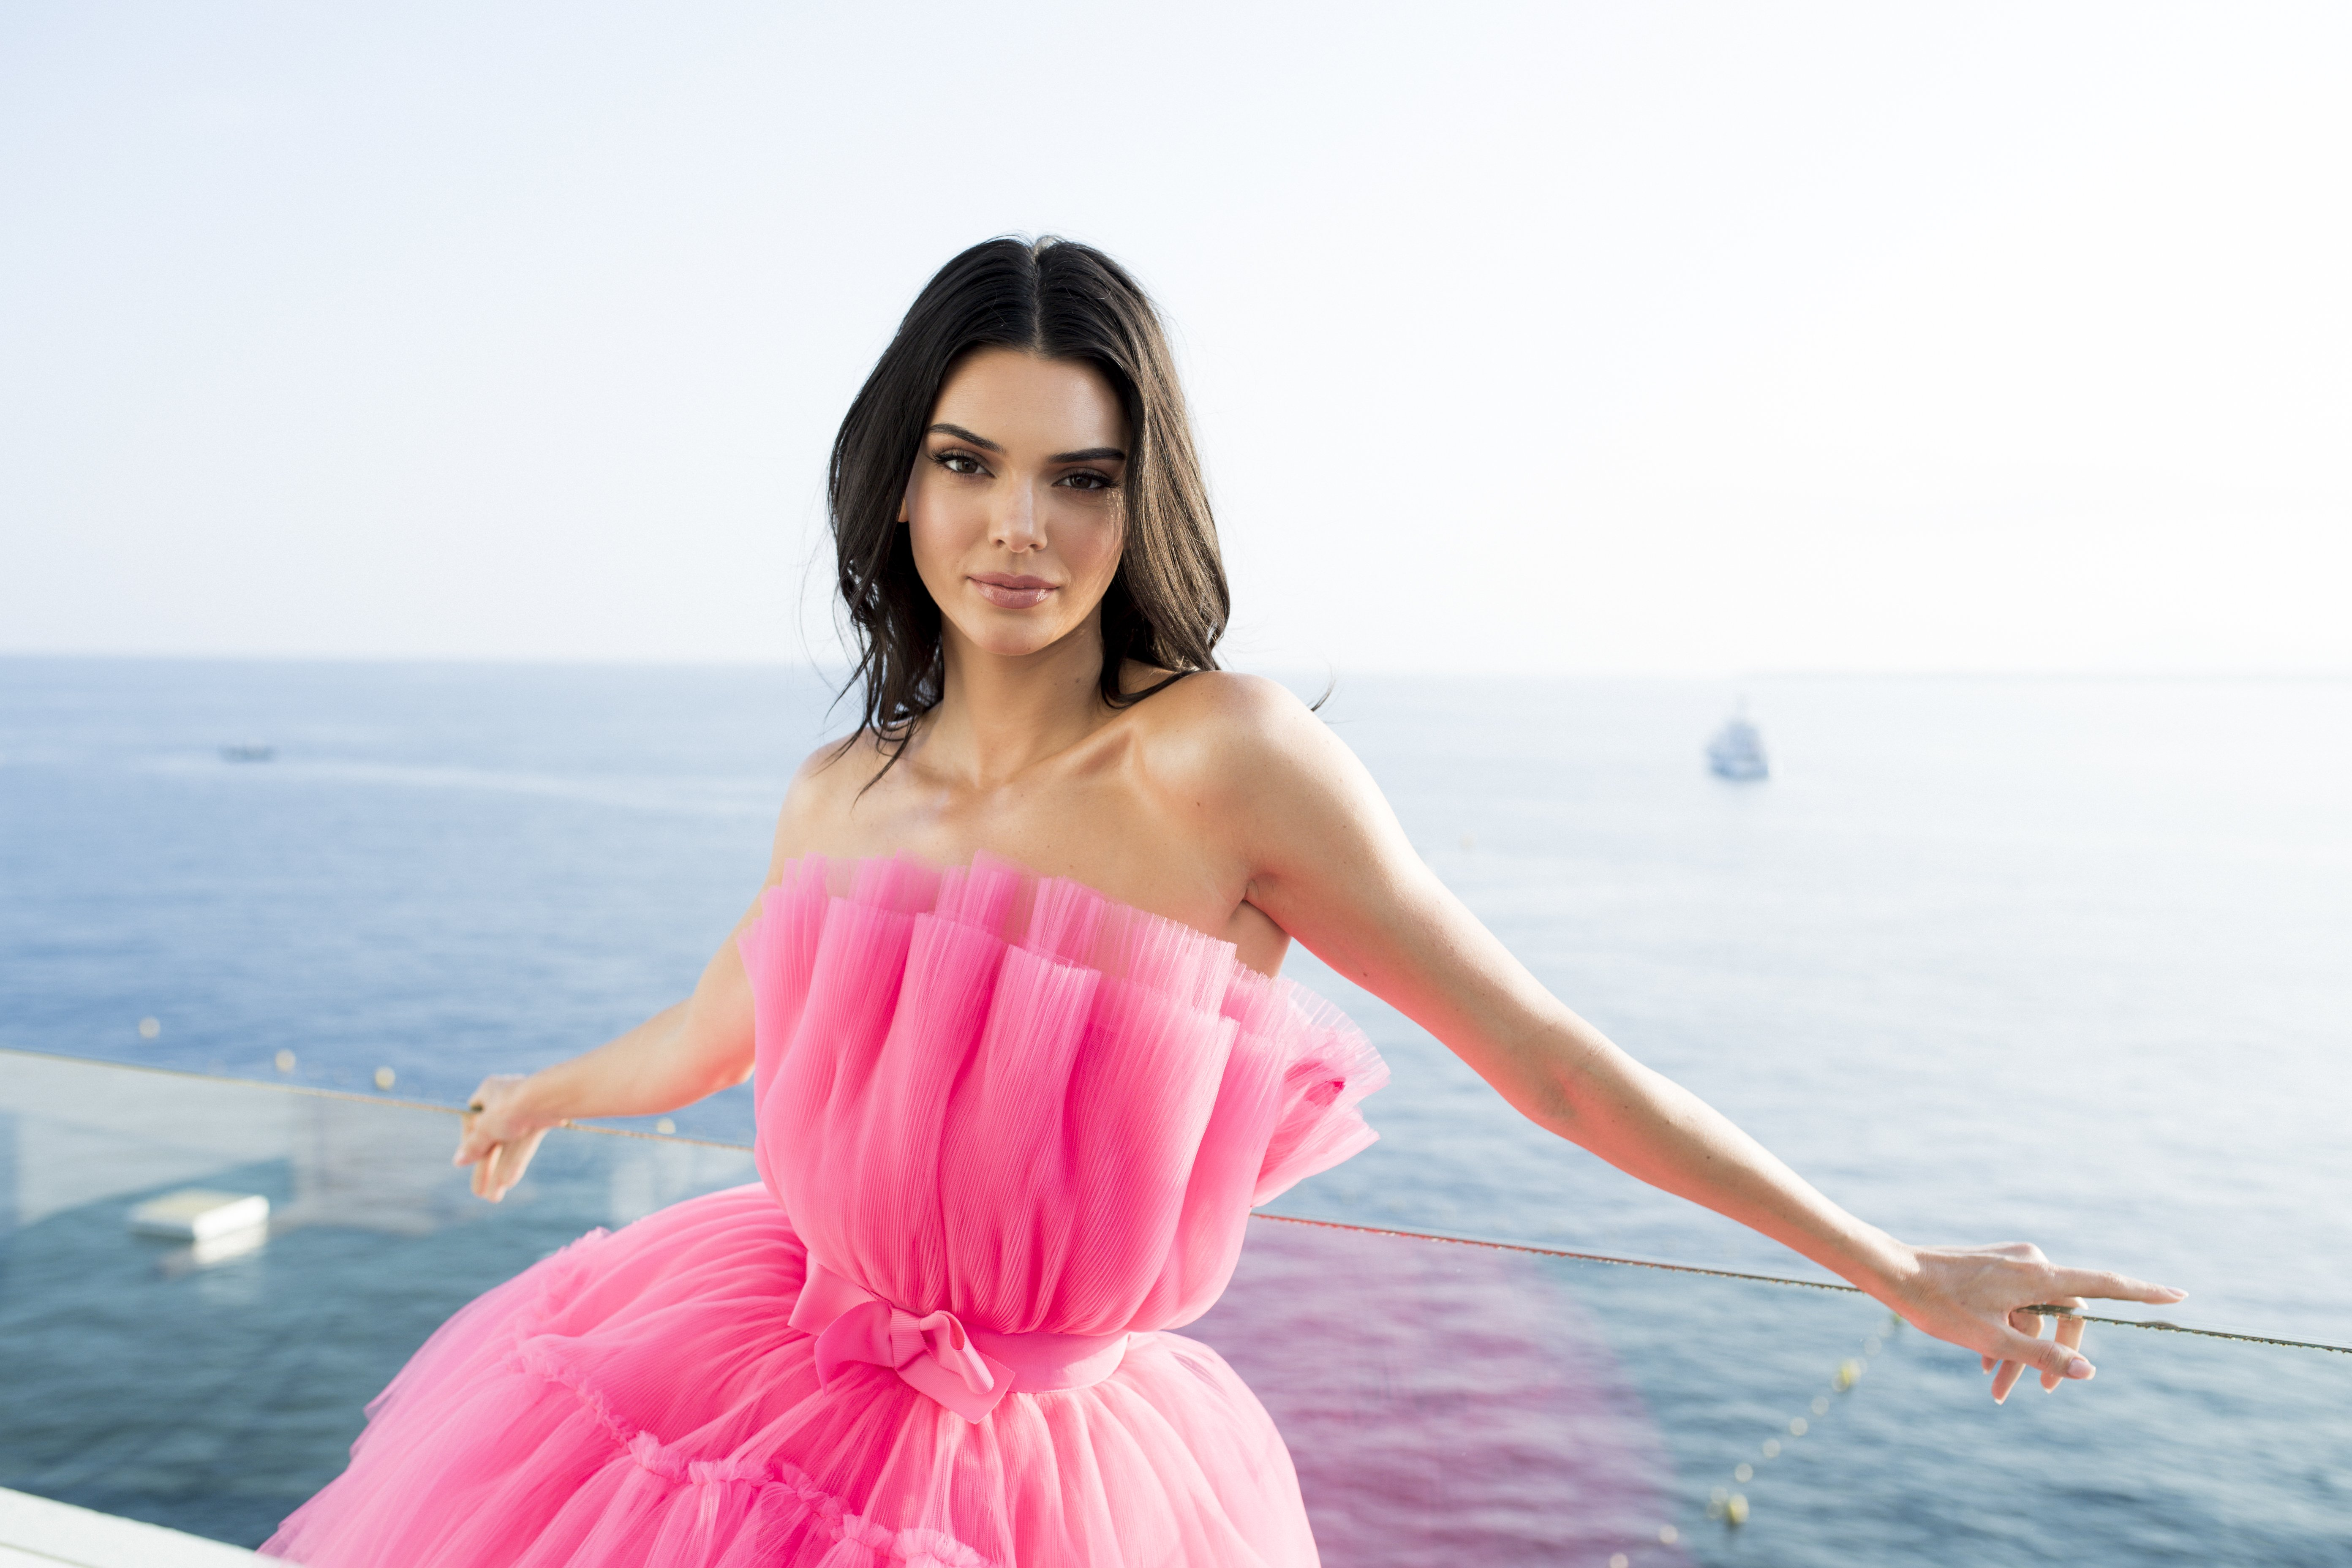 Kendall Jenner poses for portraits during the amfAR Cannes Gala 2019 on May 23, 2019, in Cap d'Antibes, France.   Source: Getty Images.